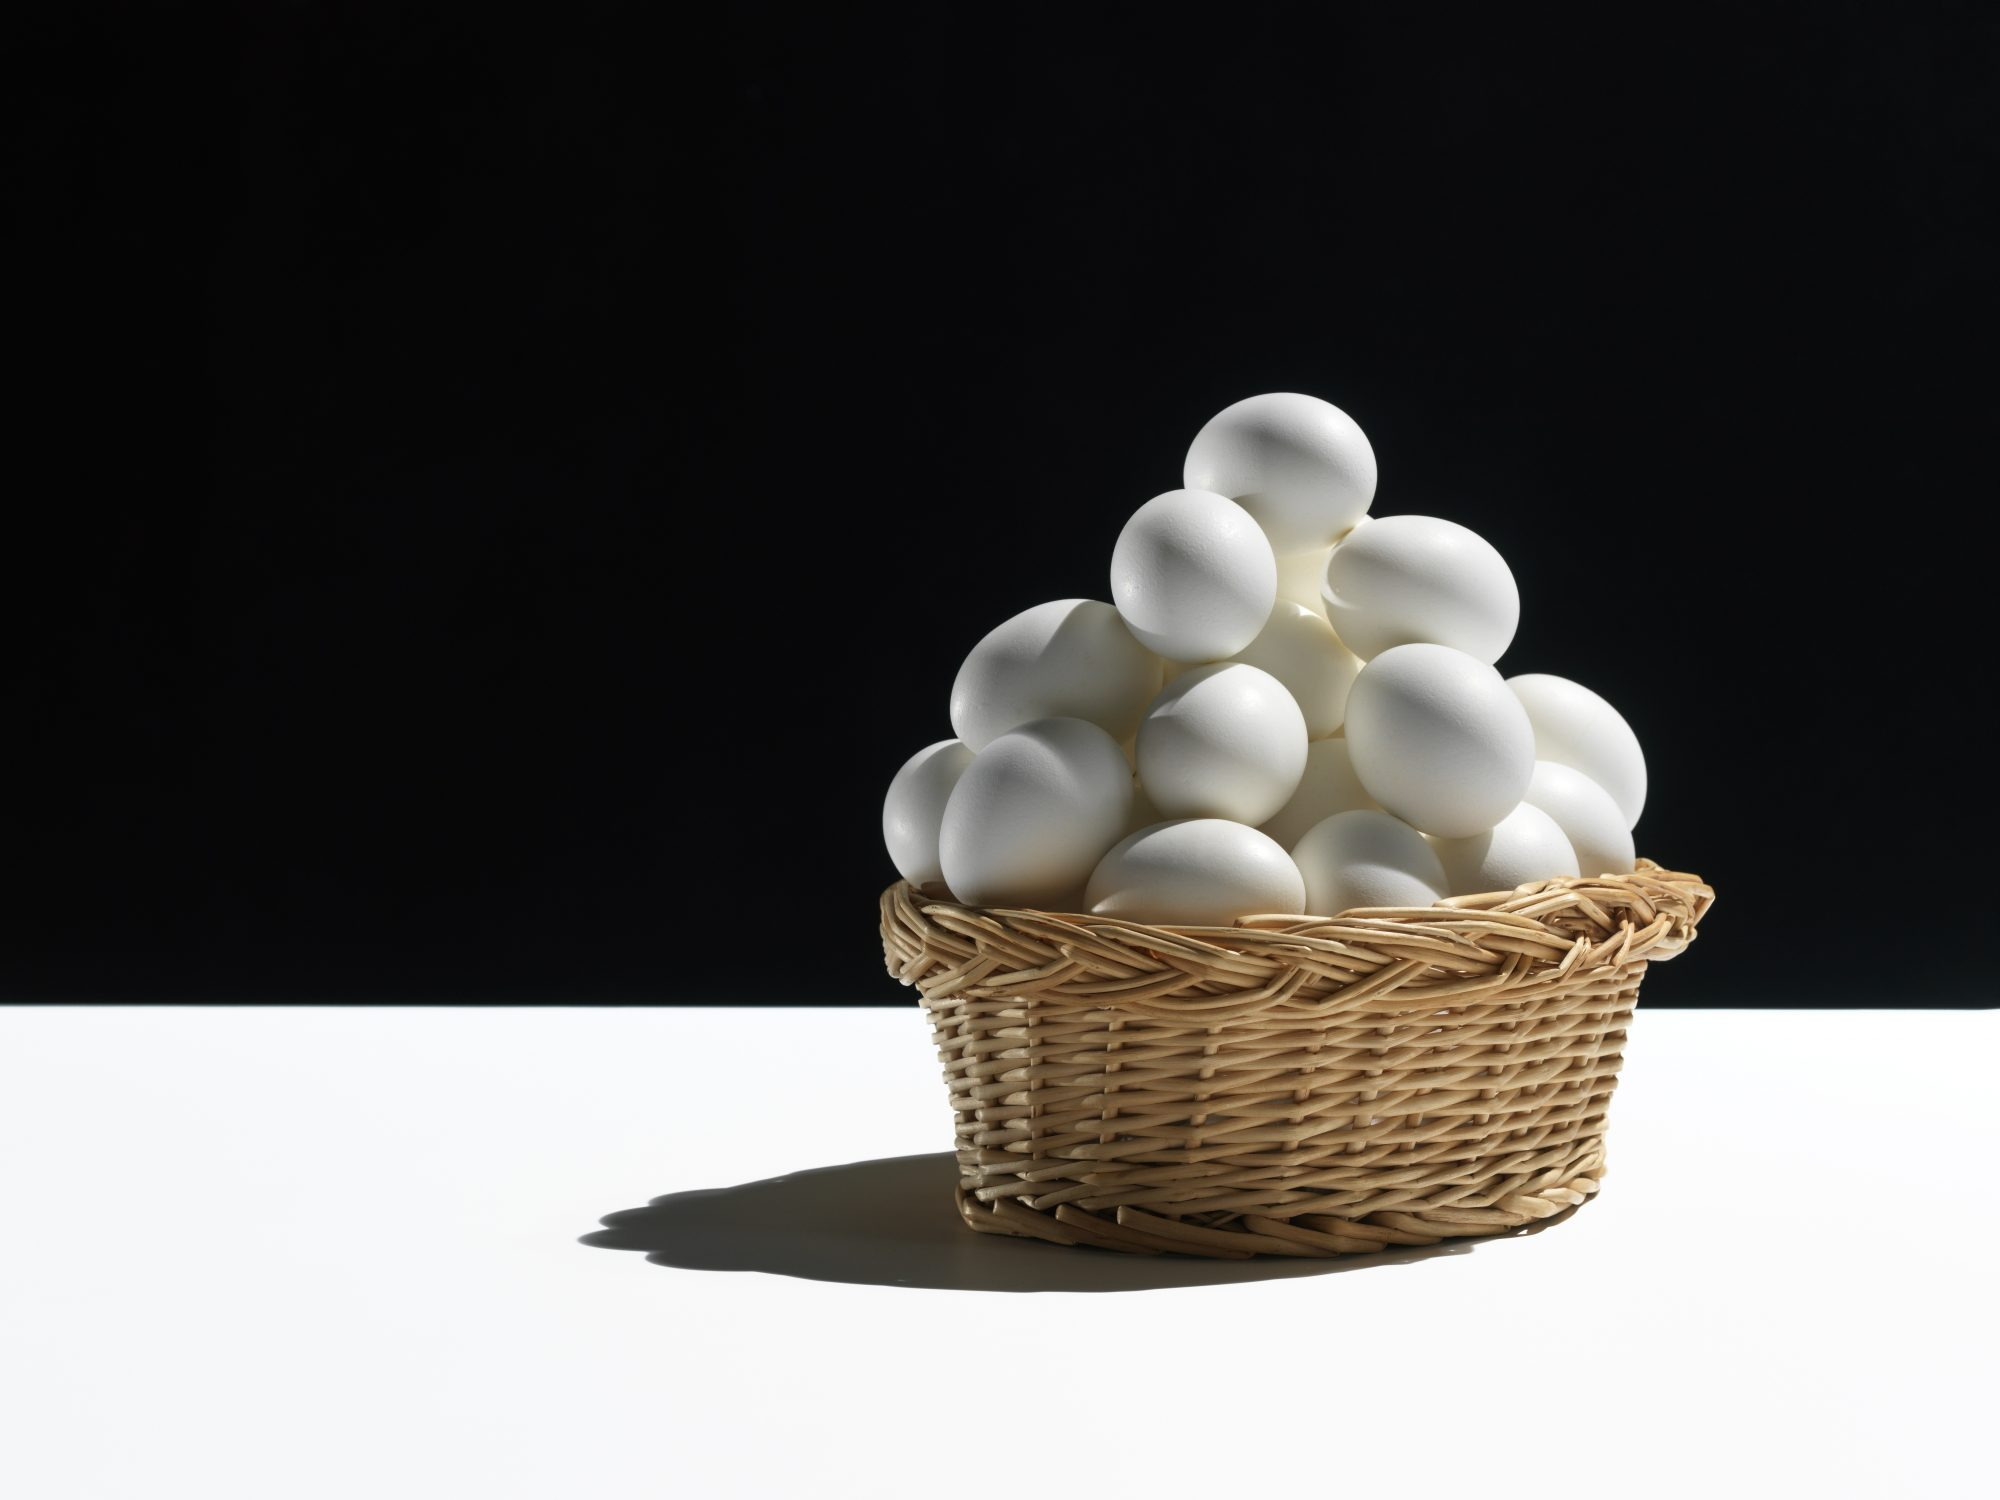 Myth: Your body makes new eggs each month